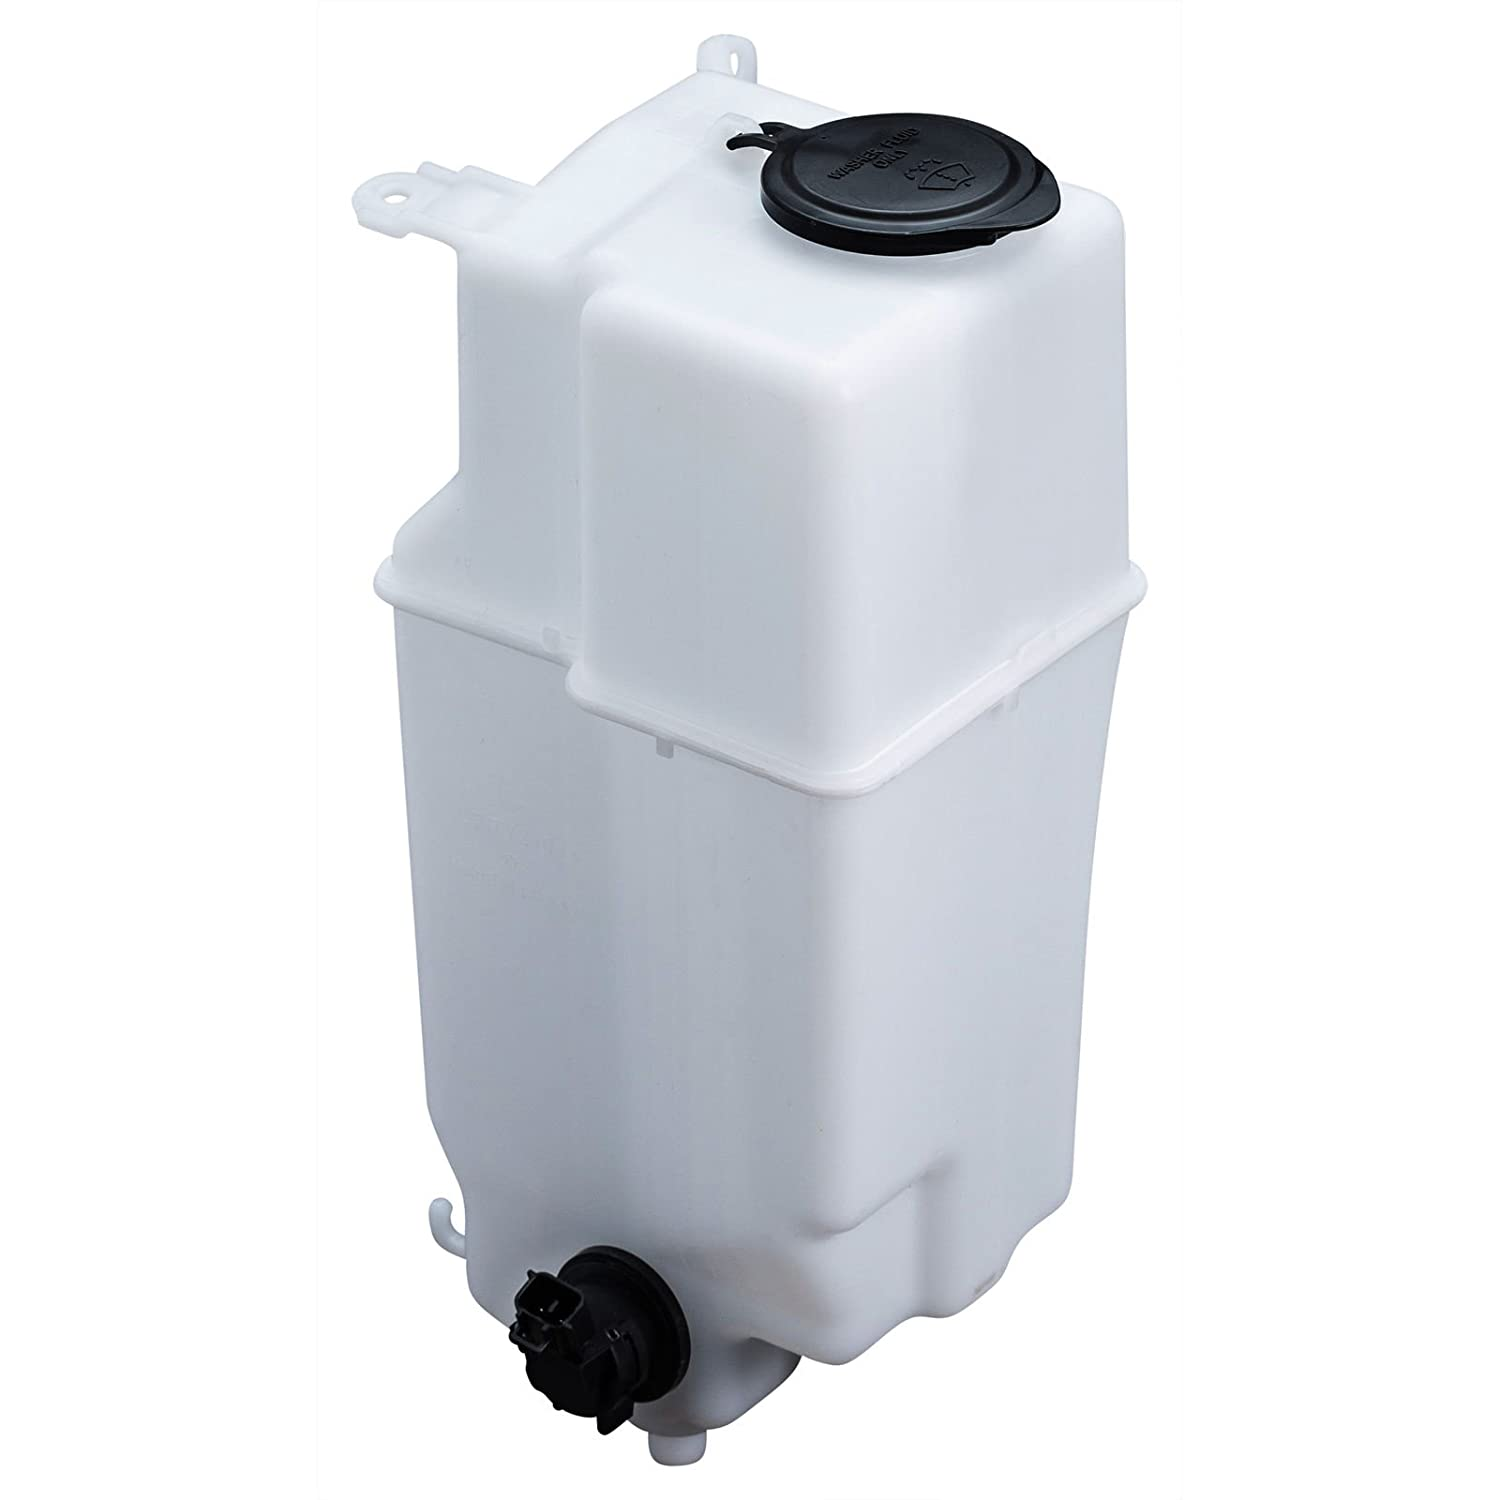 Amazon.com: Windshield Washer Fluid Reservoir w/Pump for 2005-2012 ...